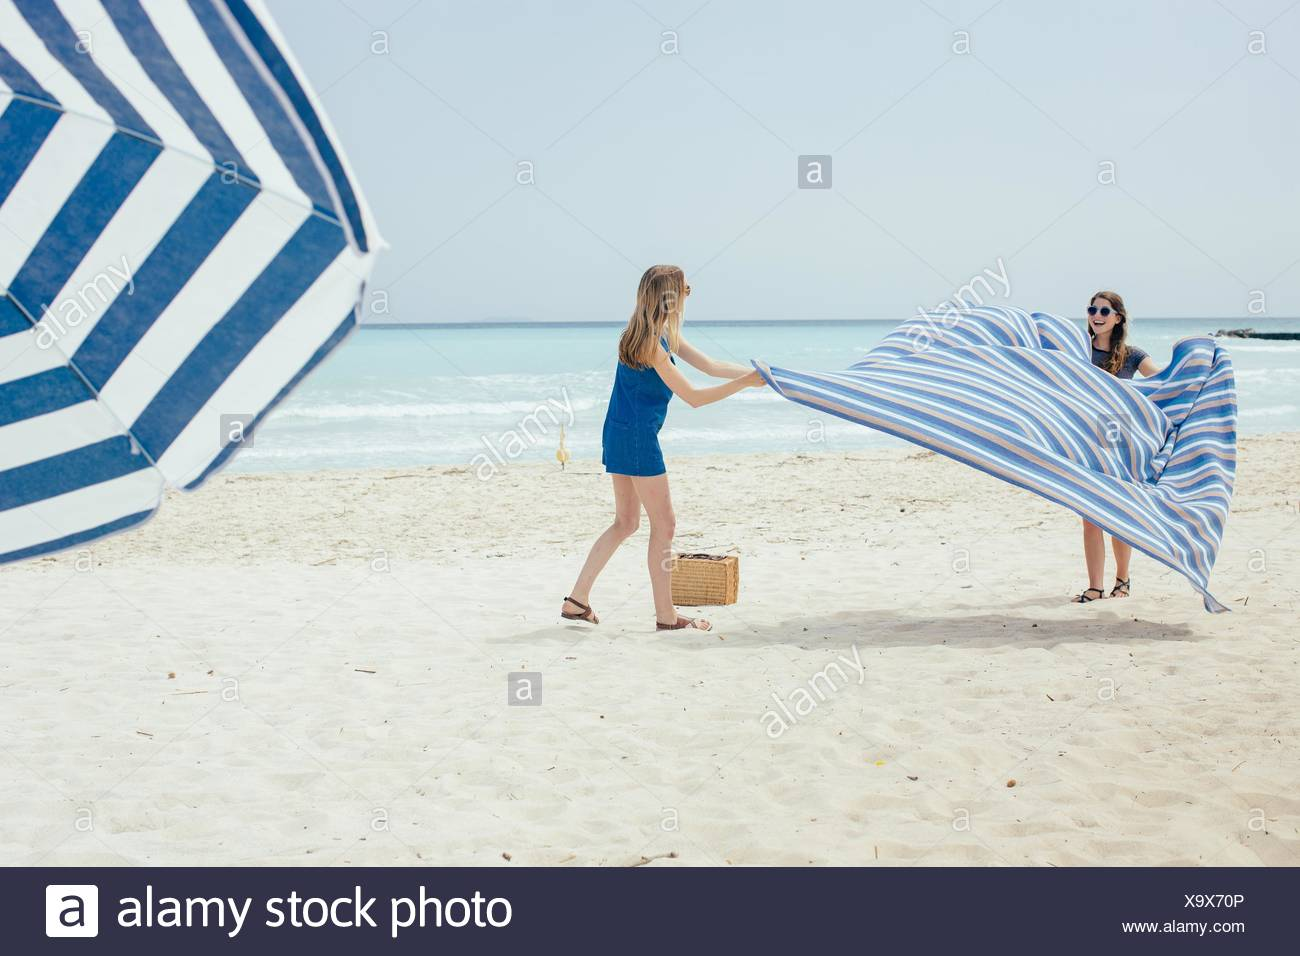 Two young female friends laying out picnic blanket on beach - Stock Image